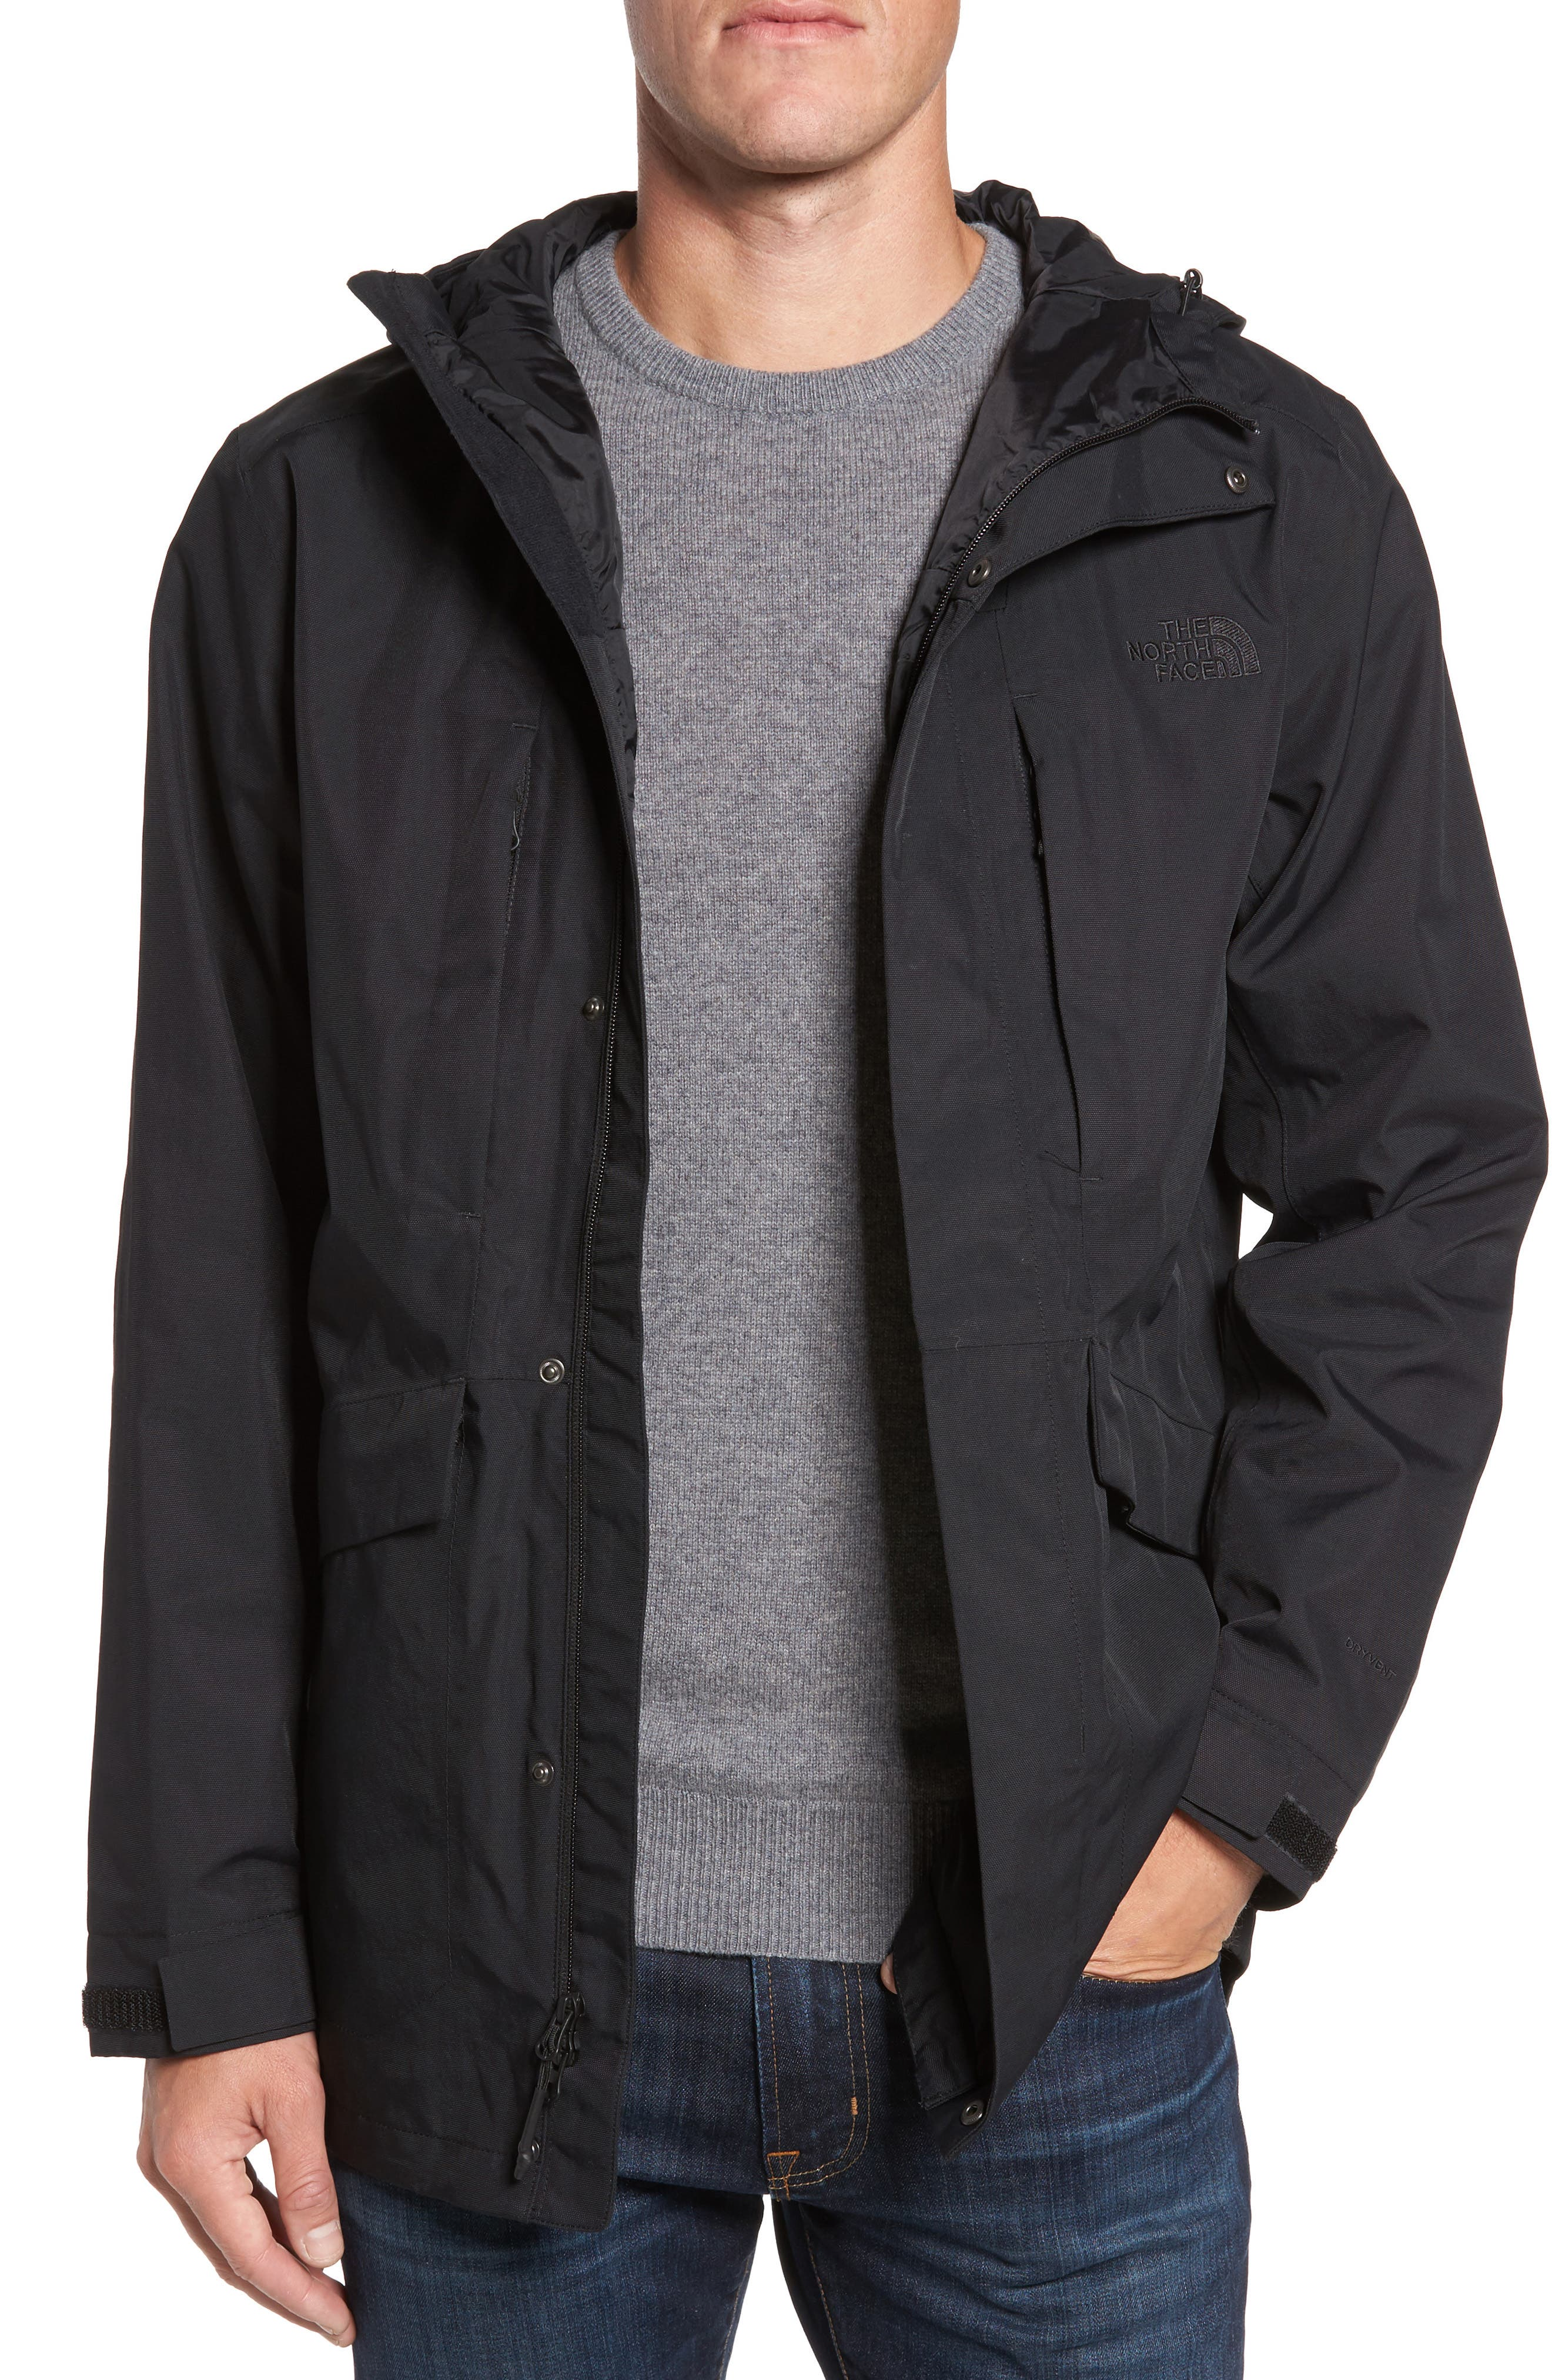 THE NORTH FACE, El Misti Trench II Hooded Jacket, Main thumbnail 1, color, 001